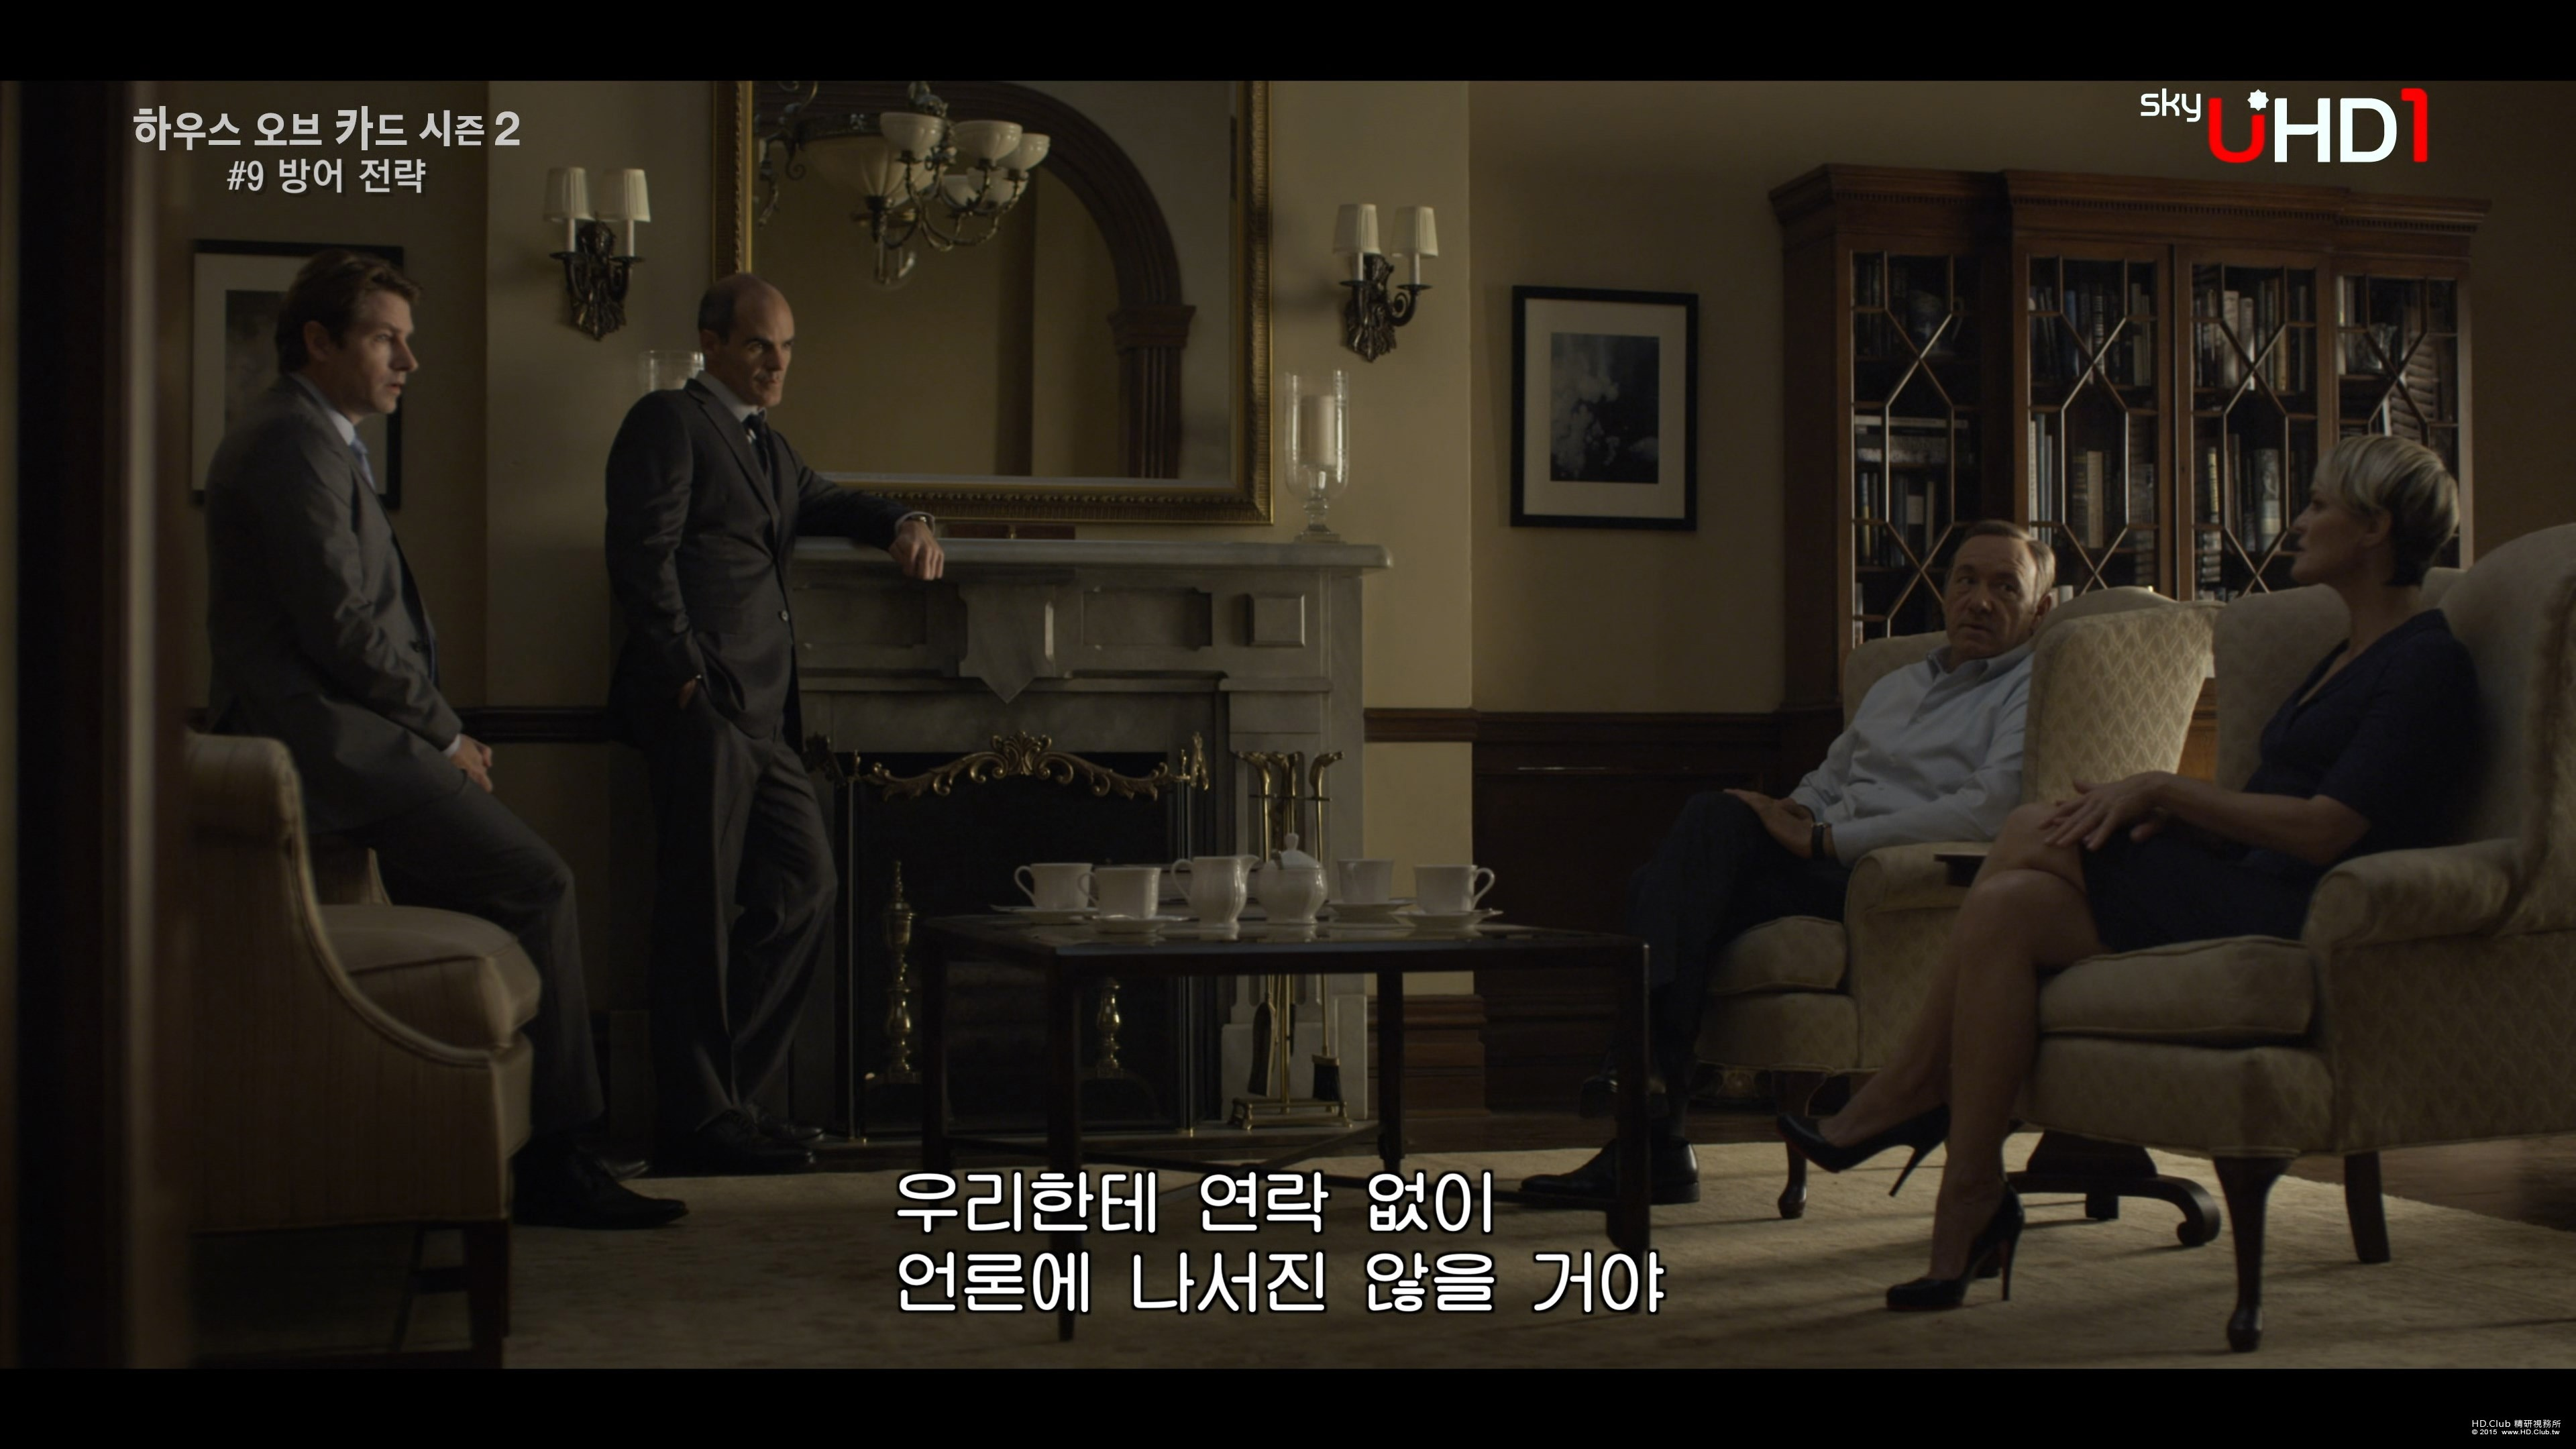 SkyUHD-House of Cards S02E09 2160p UHDTV AAC 2.0 HEVC-BtttS.ts_snapshot_04.53_[2.jpg